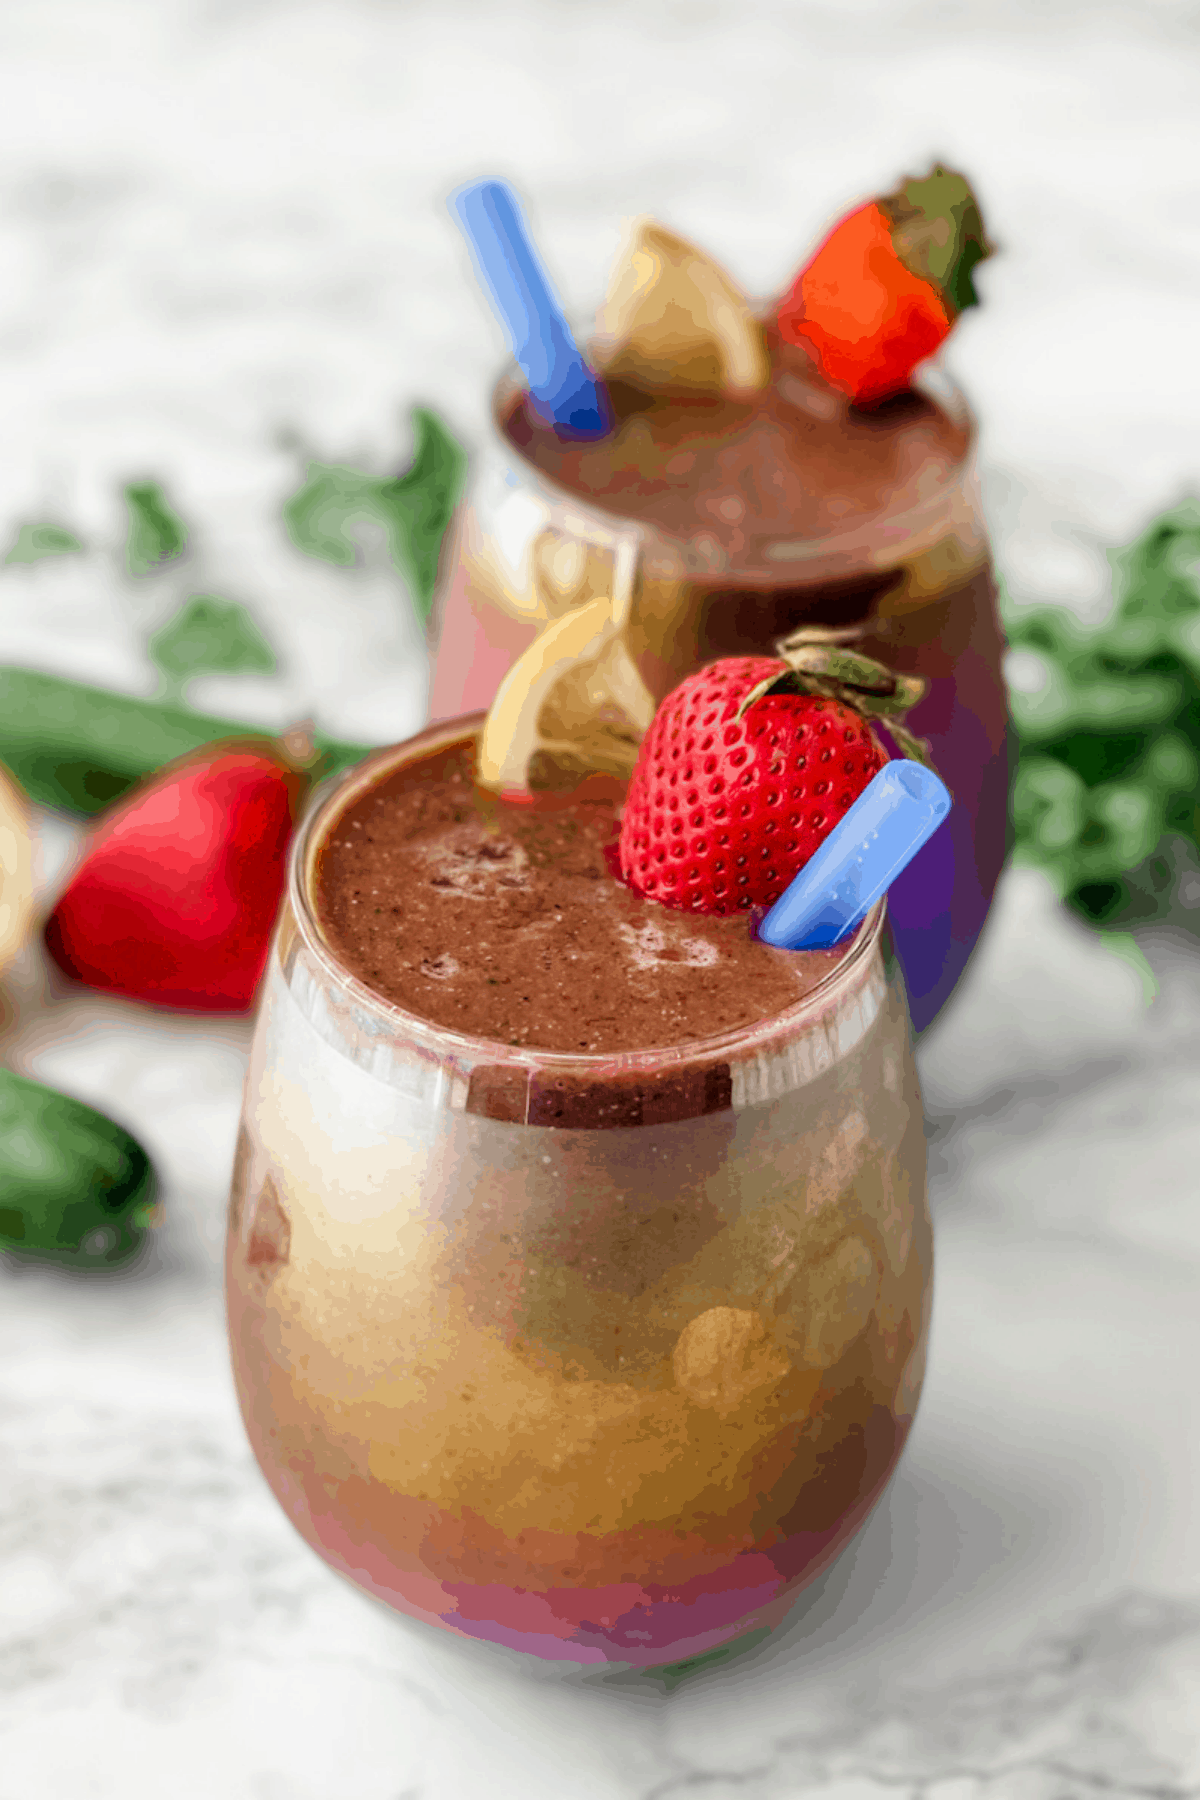 two detox smoothies in tumbler glasses.